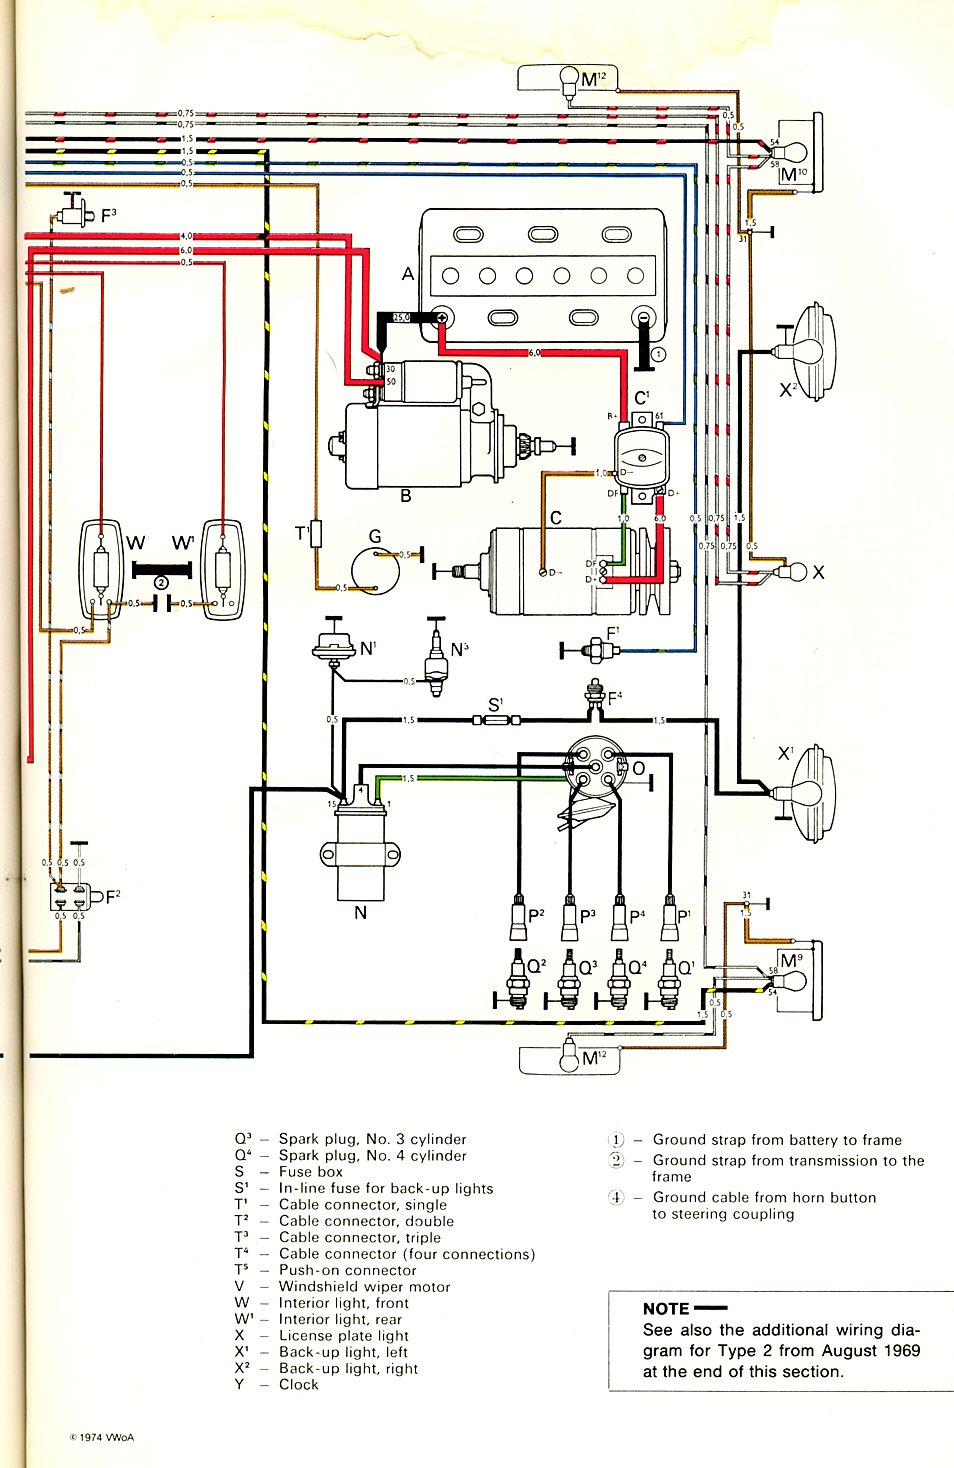 baybus_70b thesamba com type 2 wiring diagrams vw engine wiring diagram at nearapp.co